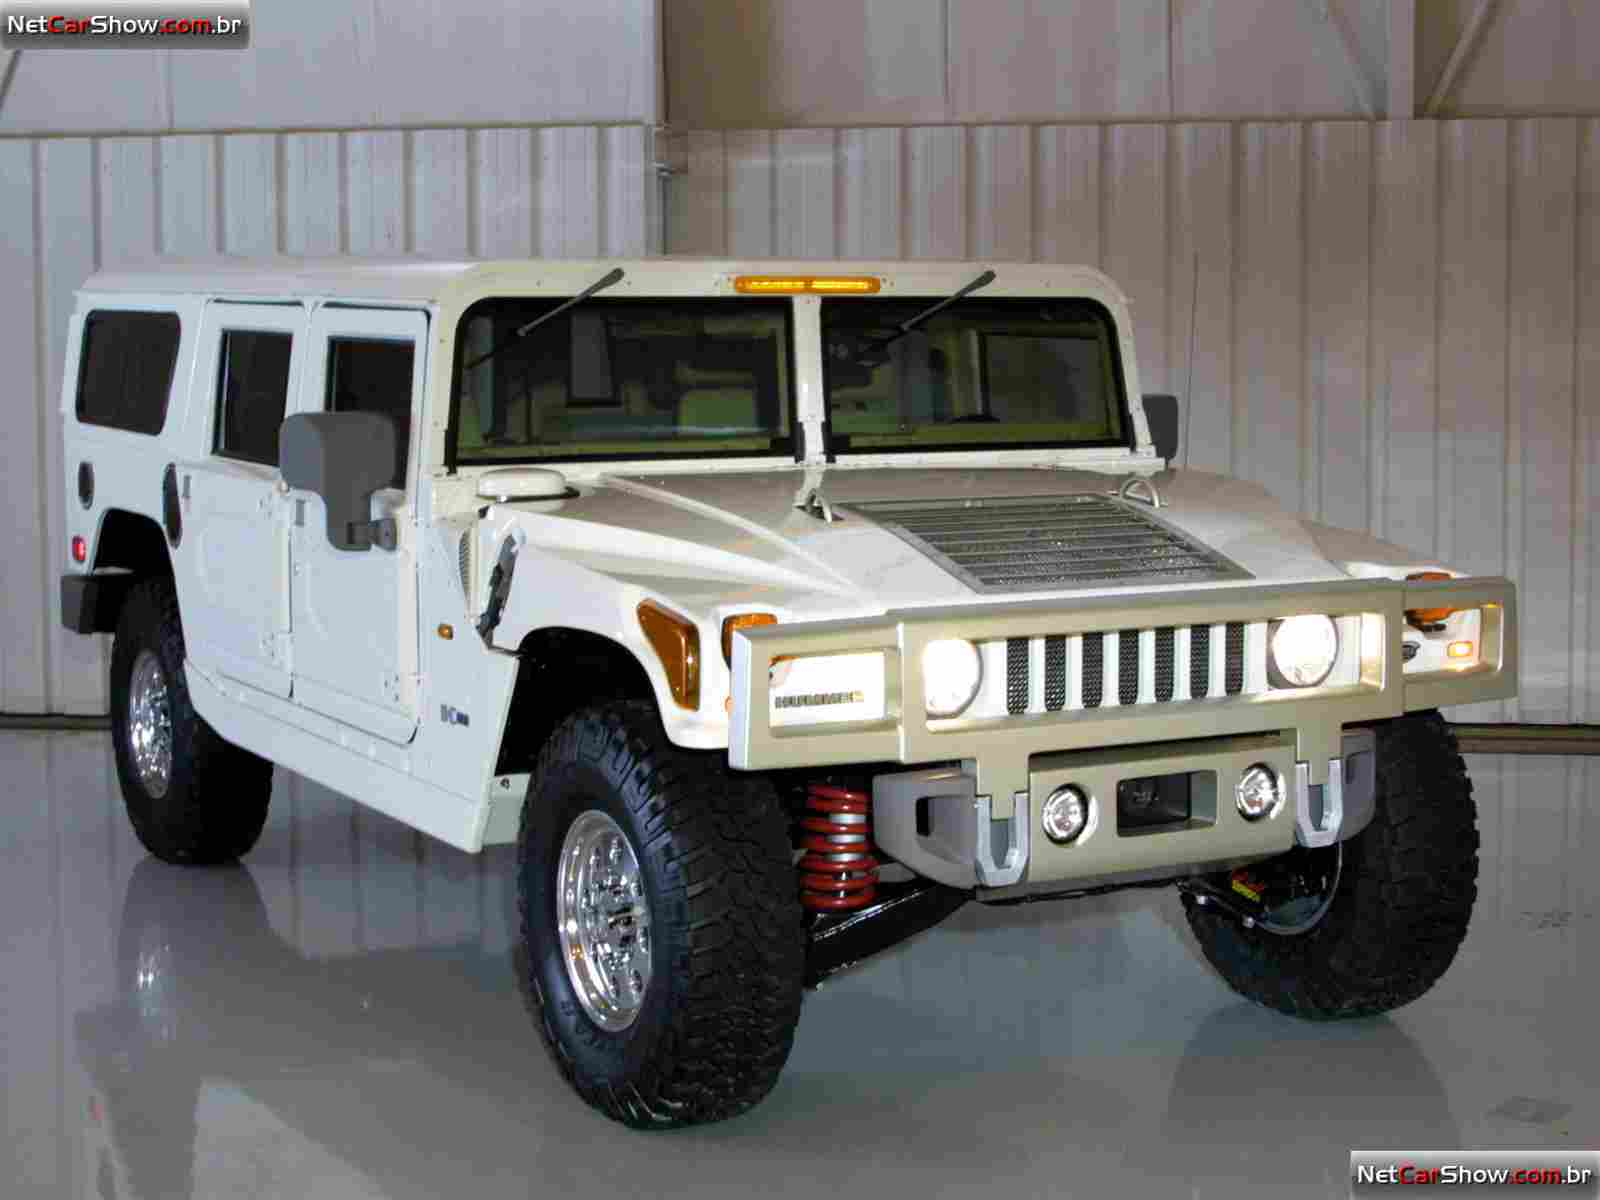 2019 Hummer H2 Safari Concept photo - 2